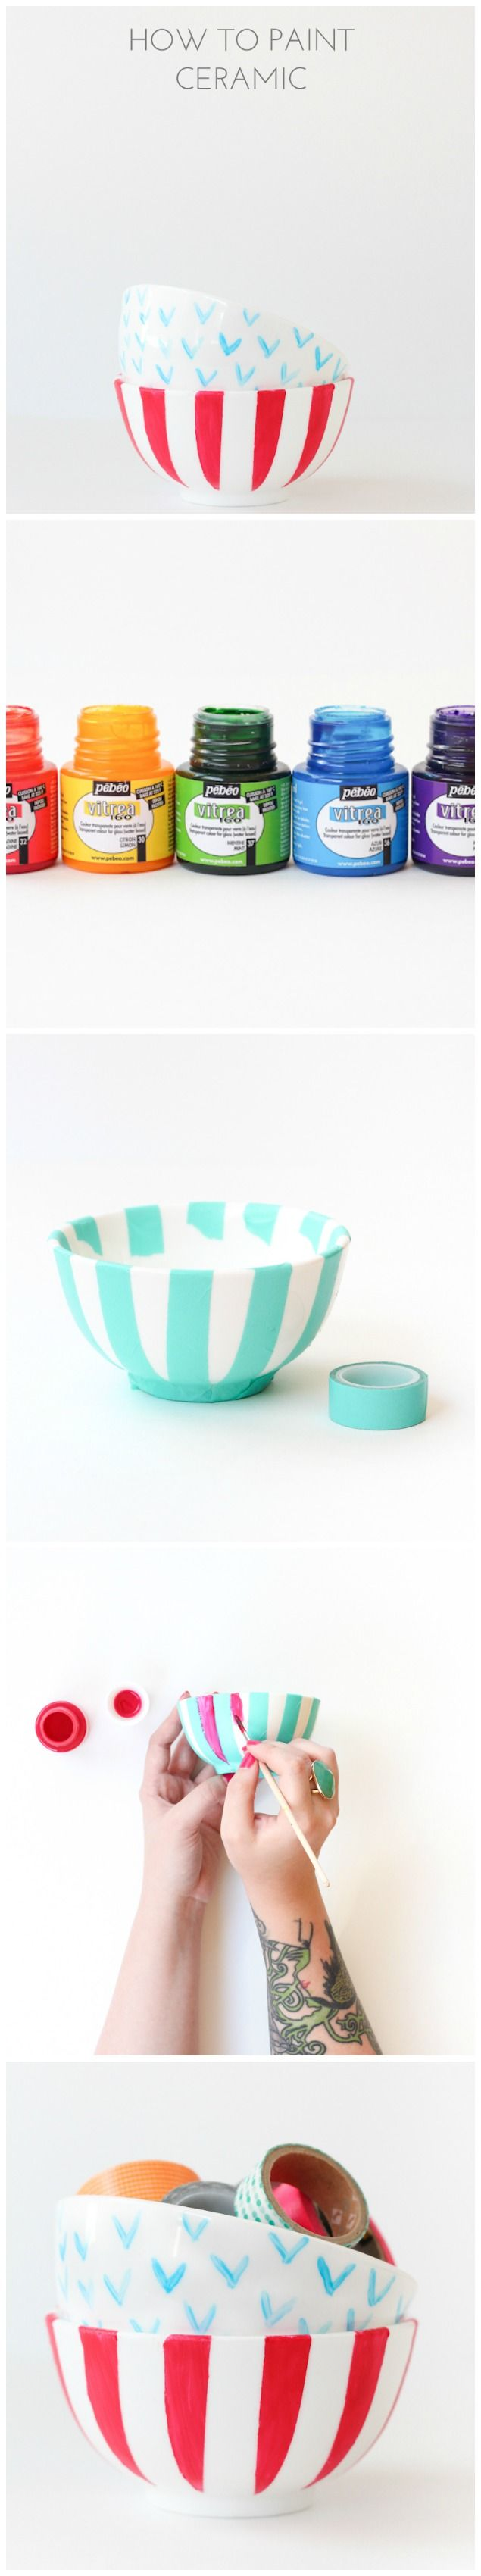 How To Paint Ceramic China Glass And Make It Dishwasher Safe Ceramic Painting Diy Painting Diy Projects To Try